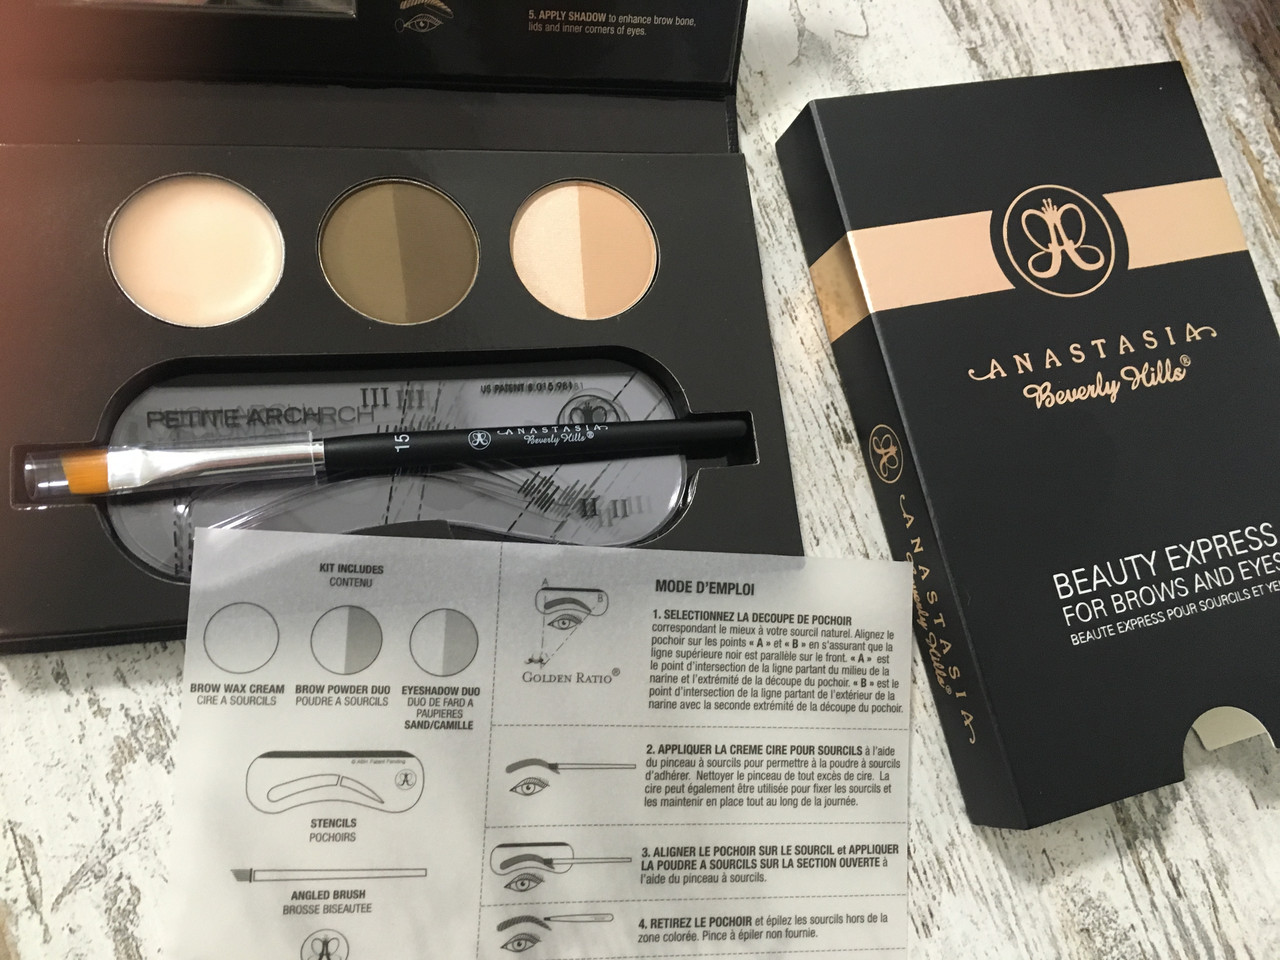 Набор для бровей ANASTASIA BEVERLY HILLS Beauty Express